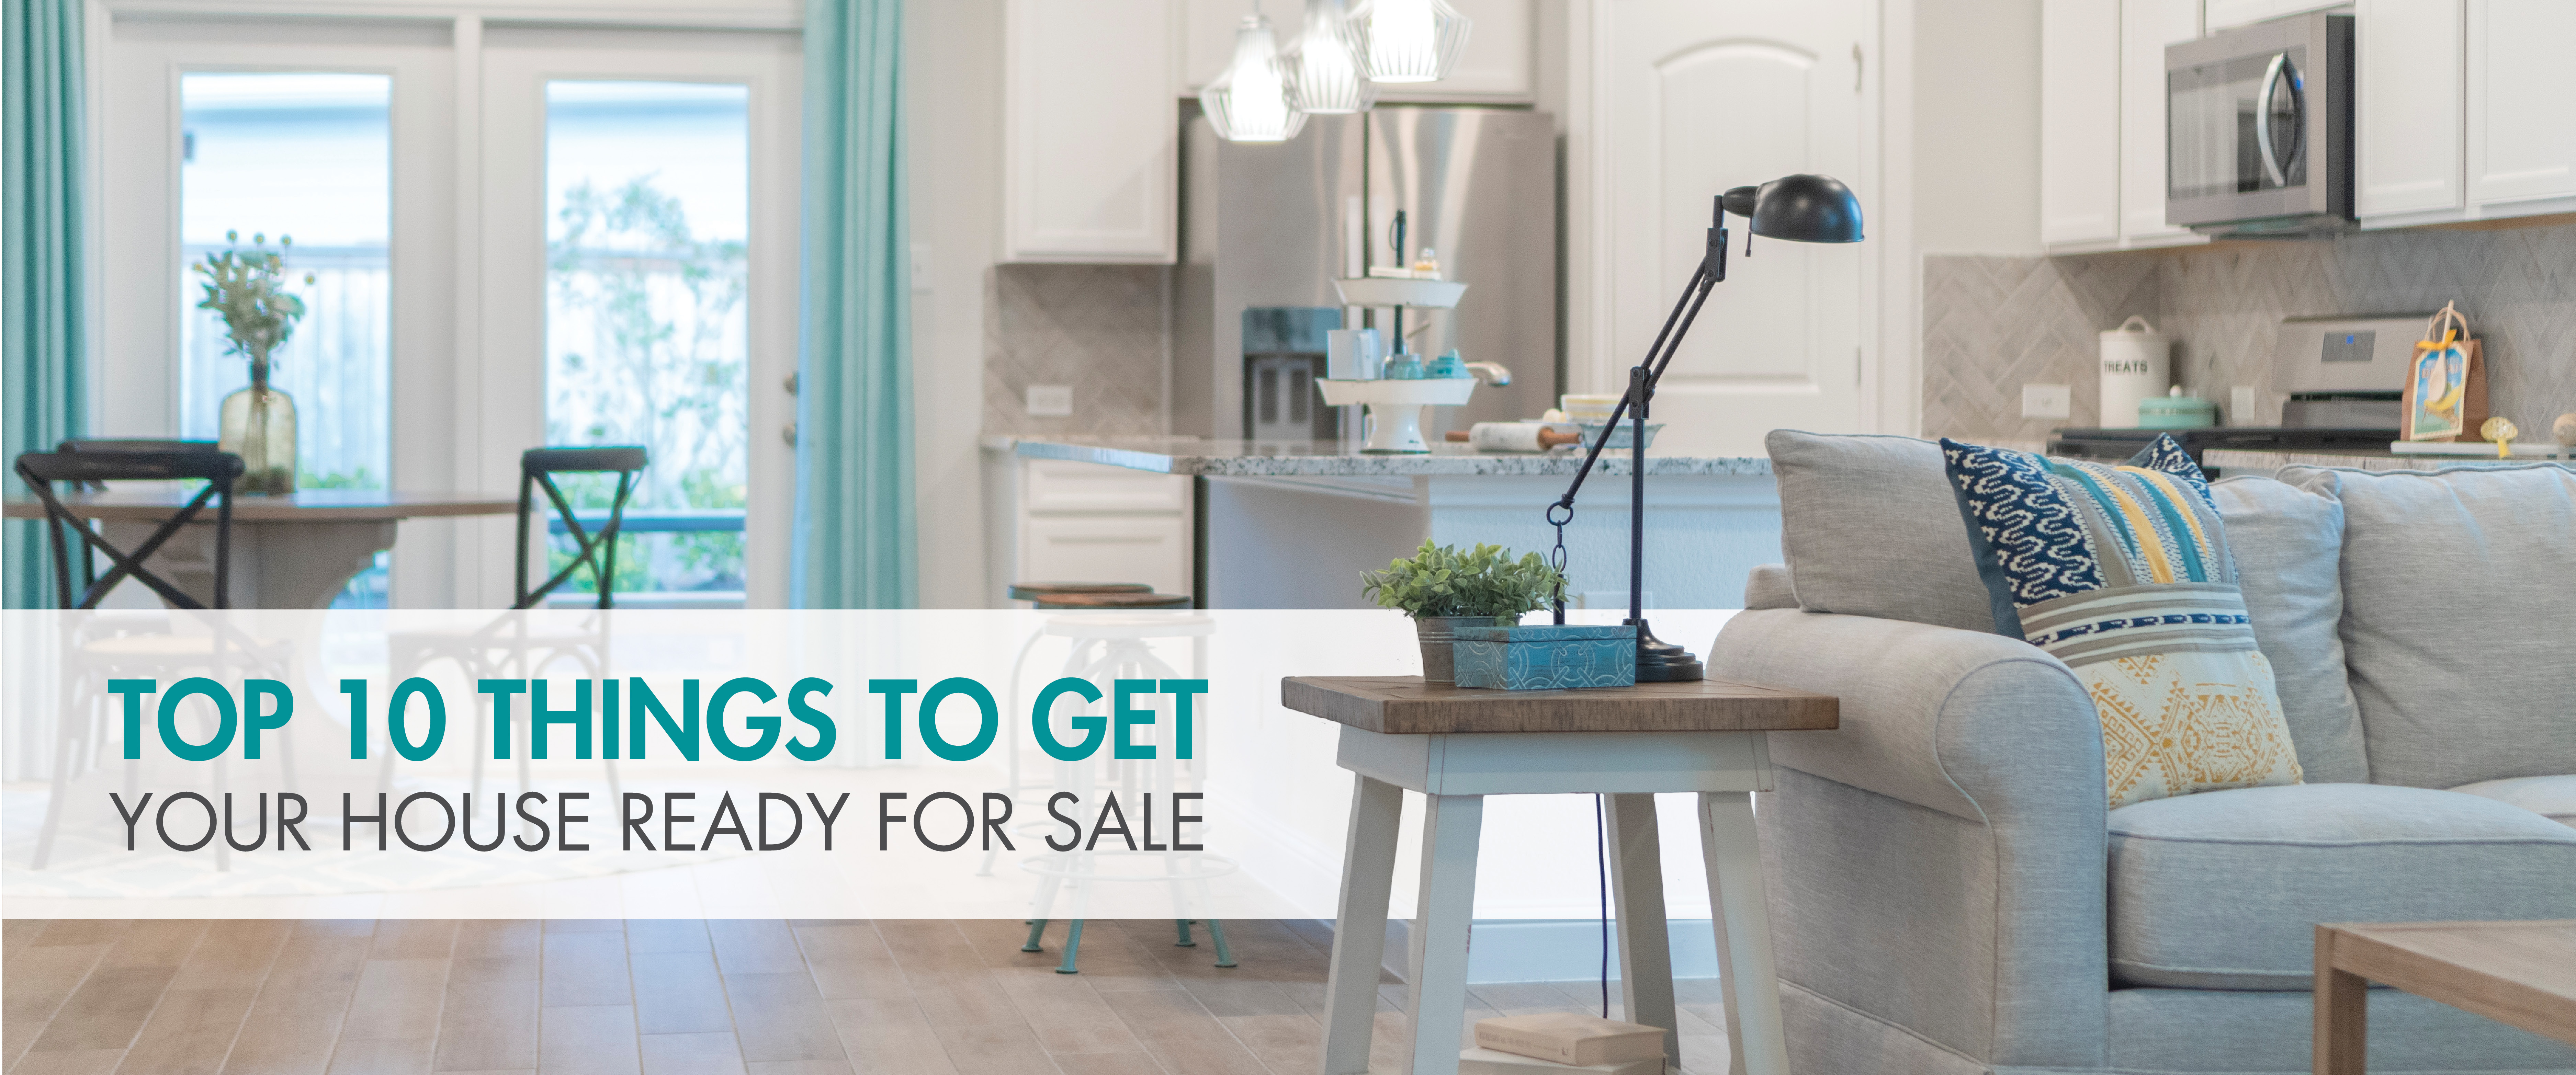 Top 10 Things to Get Your House Ready to Sell